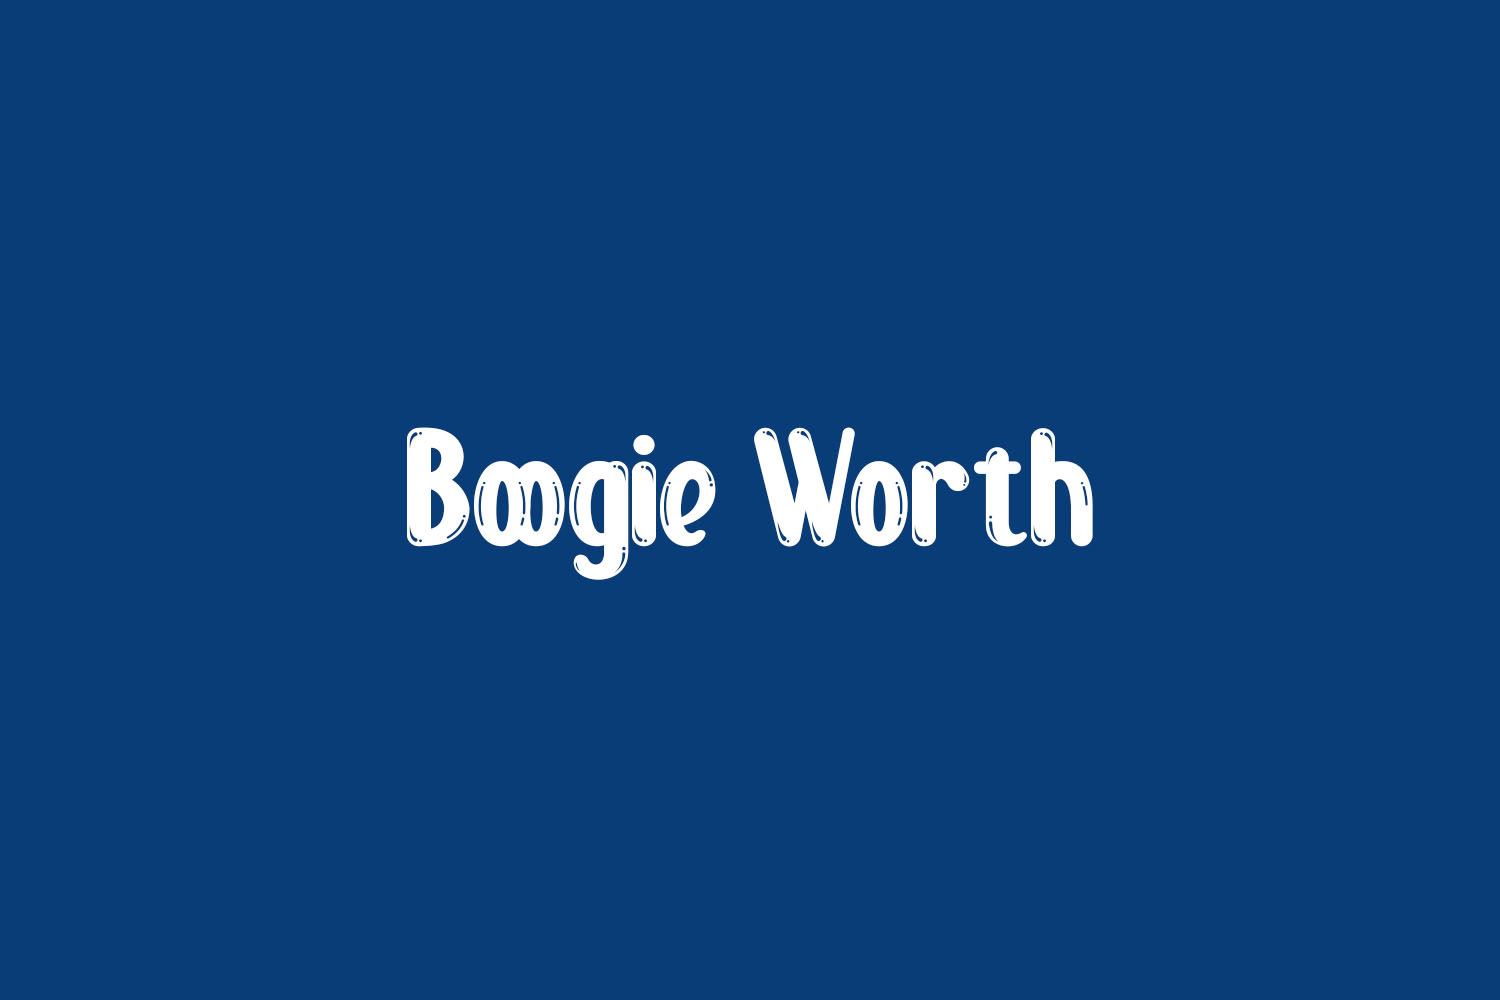 Boogie Worth Free Font